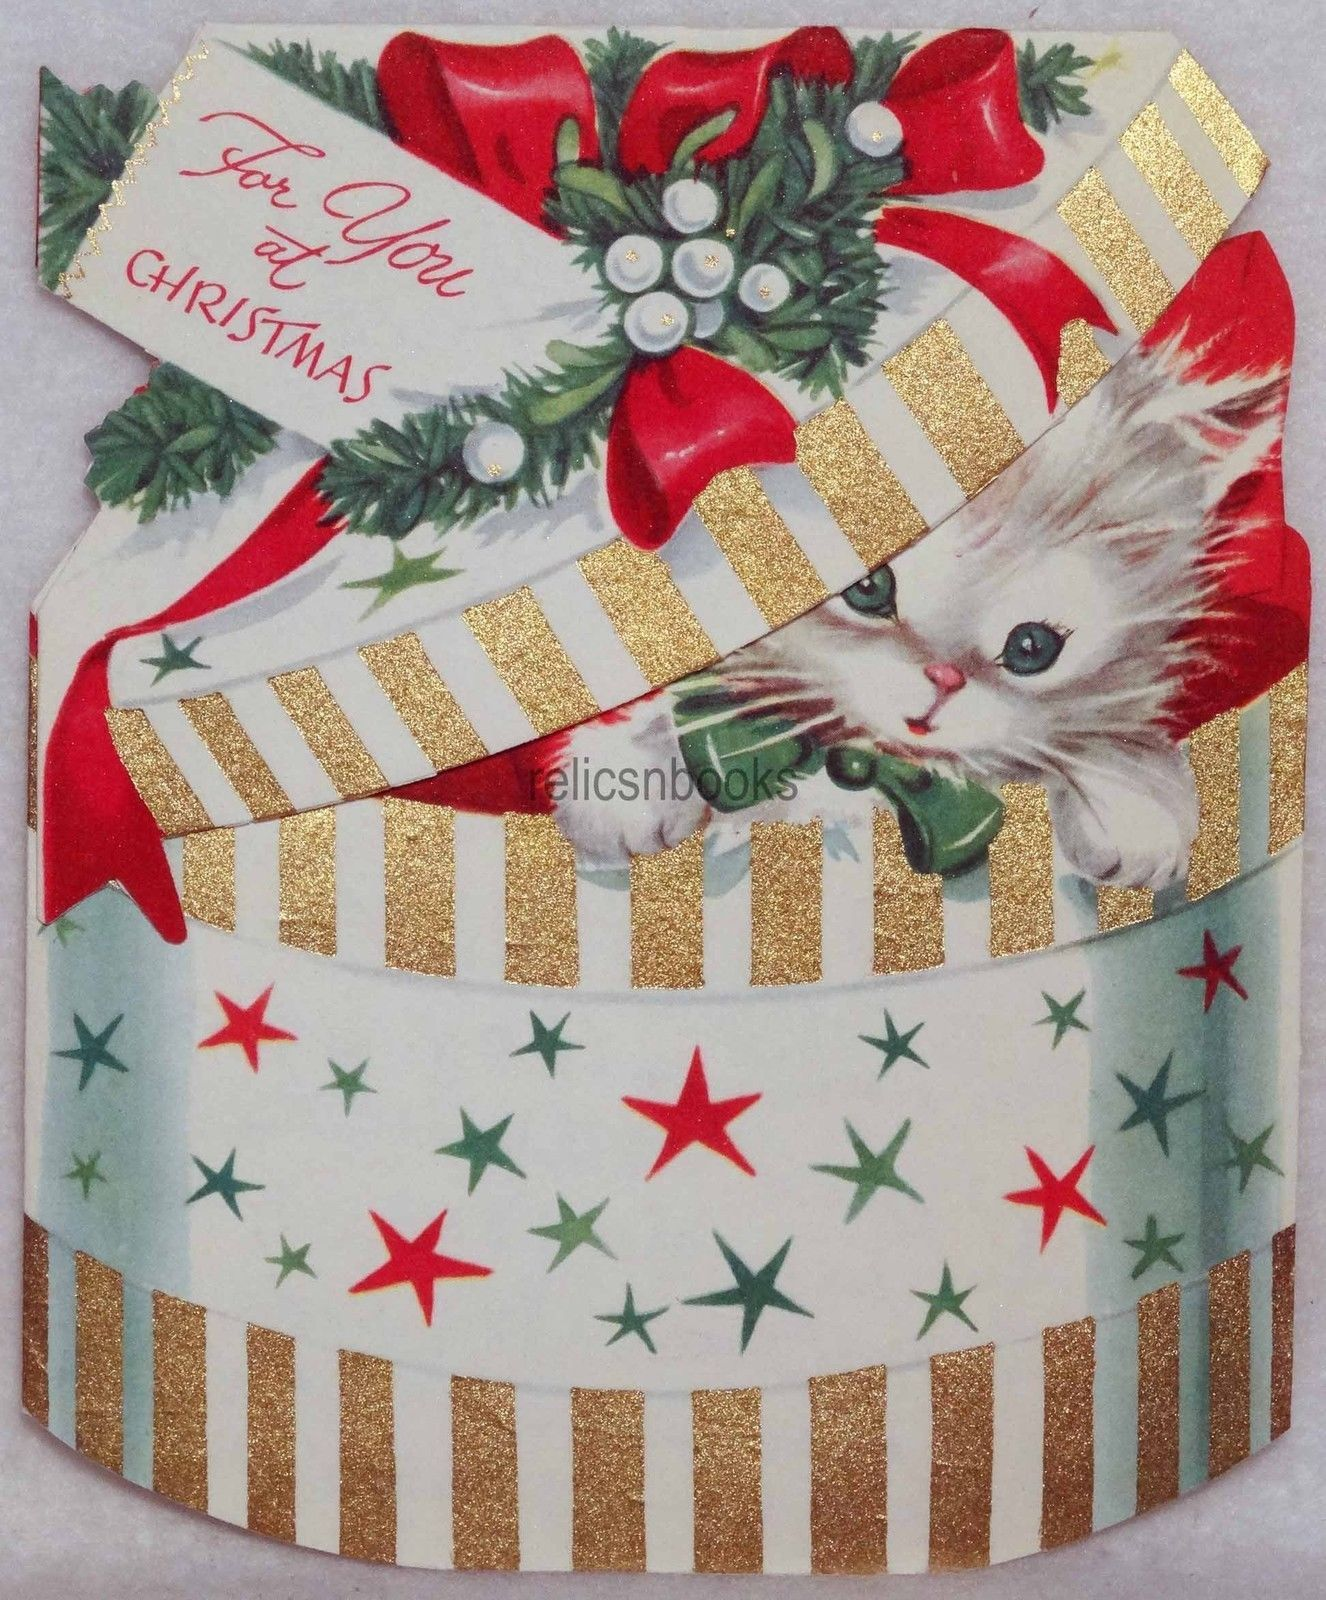 1810 50s sweet kitty cat in the hat box vintage christmas card 1810 50s sweet kitty cat in the hat box vintage christmas card greeting kristyandbryce Choice Image